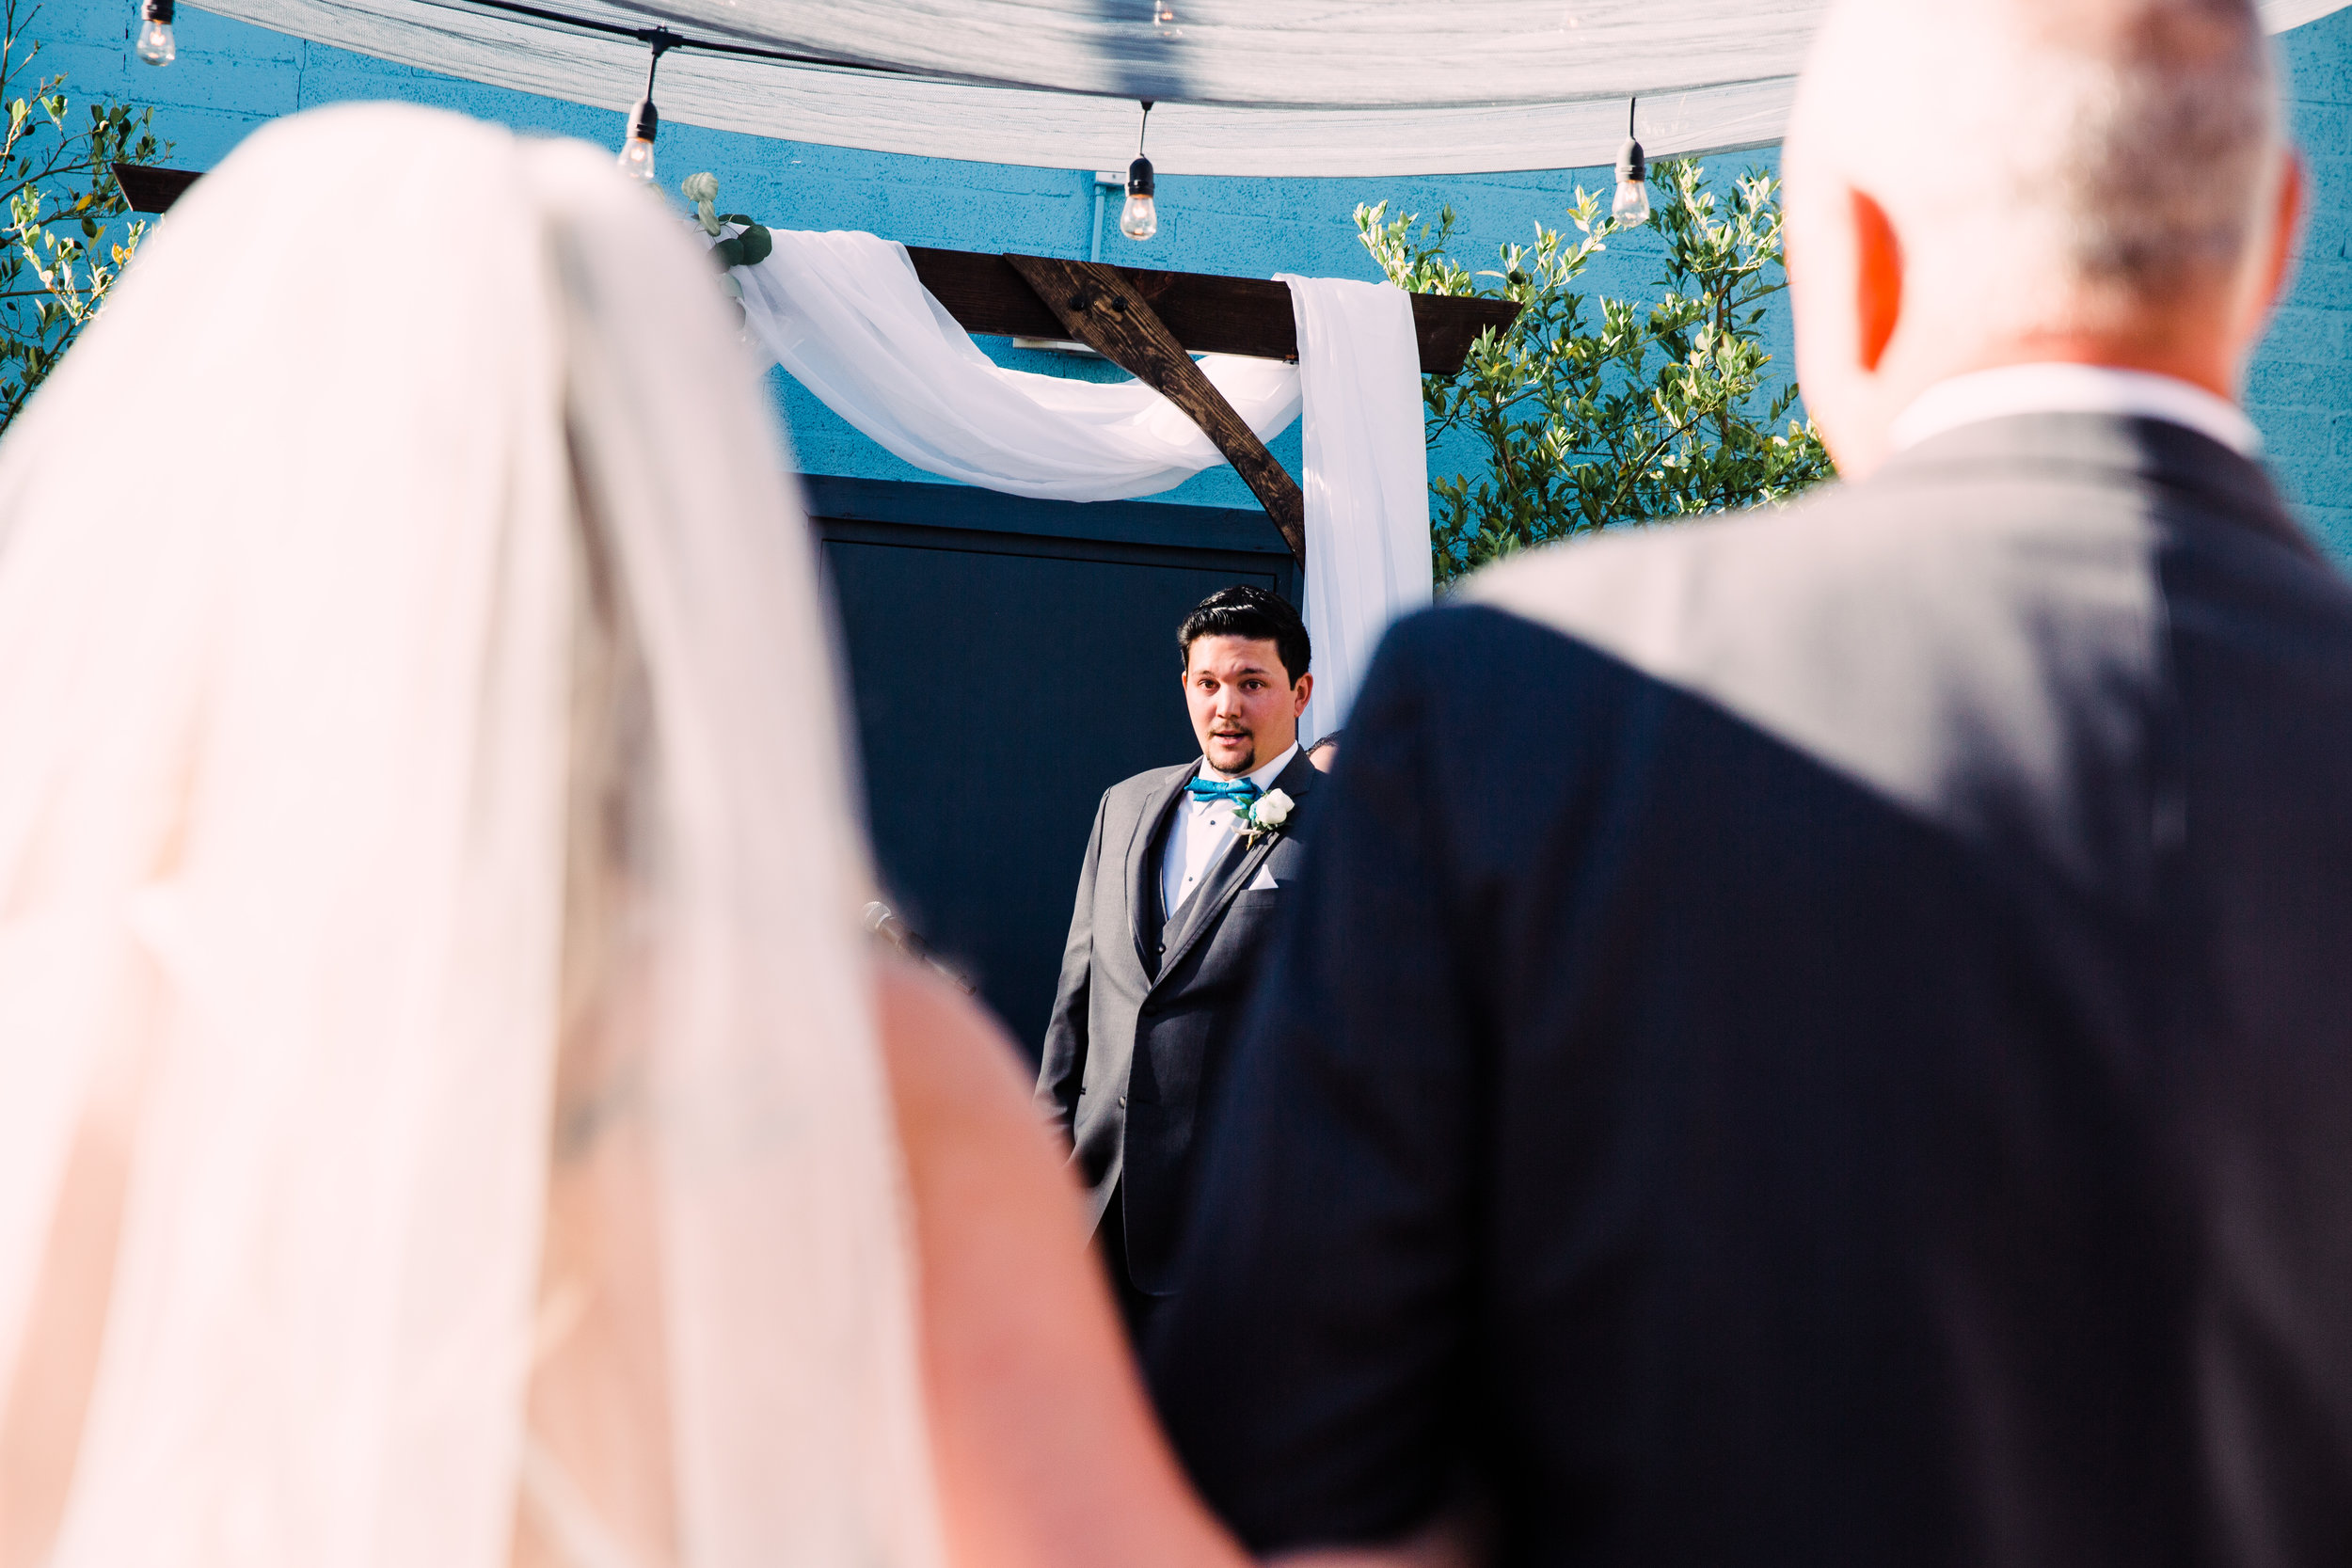 Aaron's face when he saw Courtney walking down the aisle for the first time